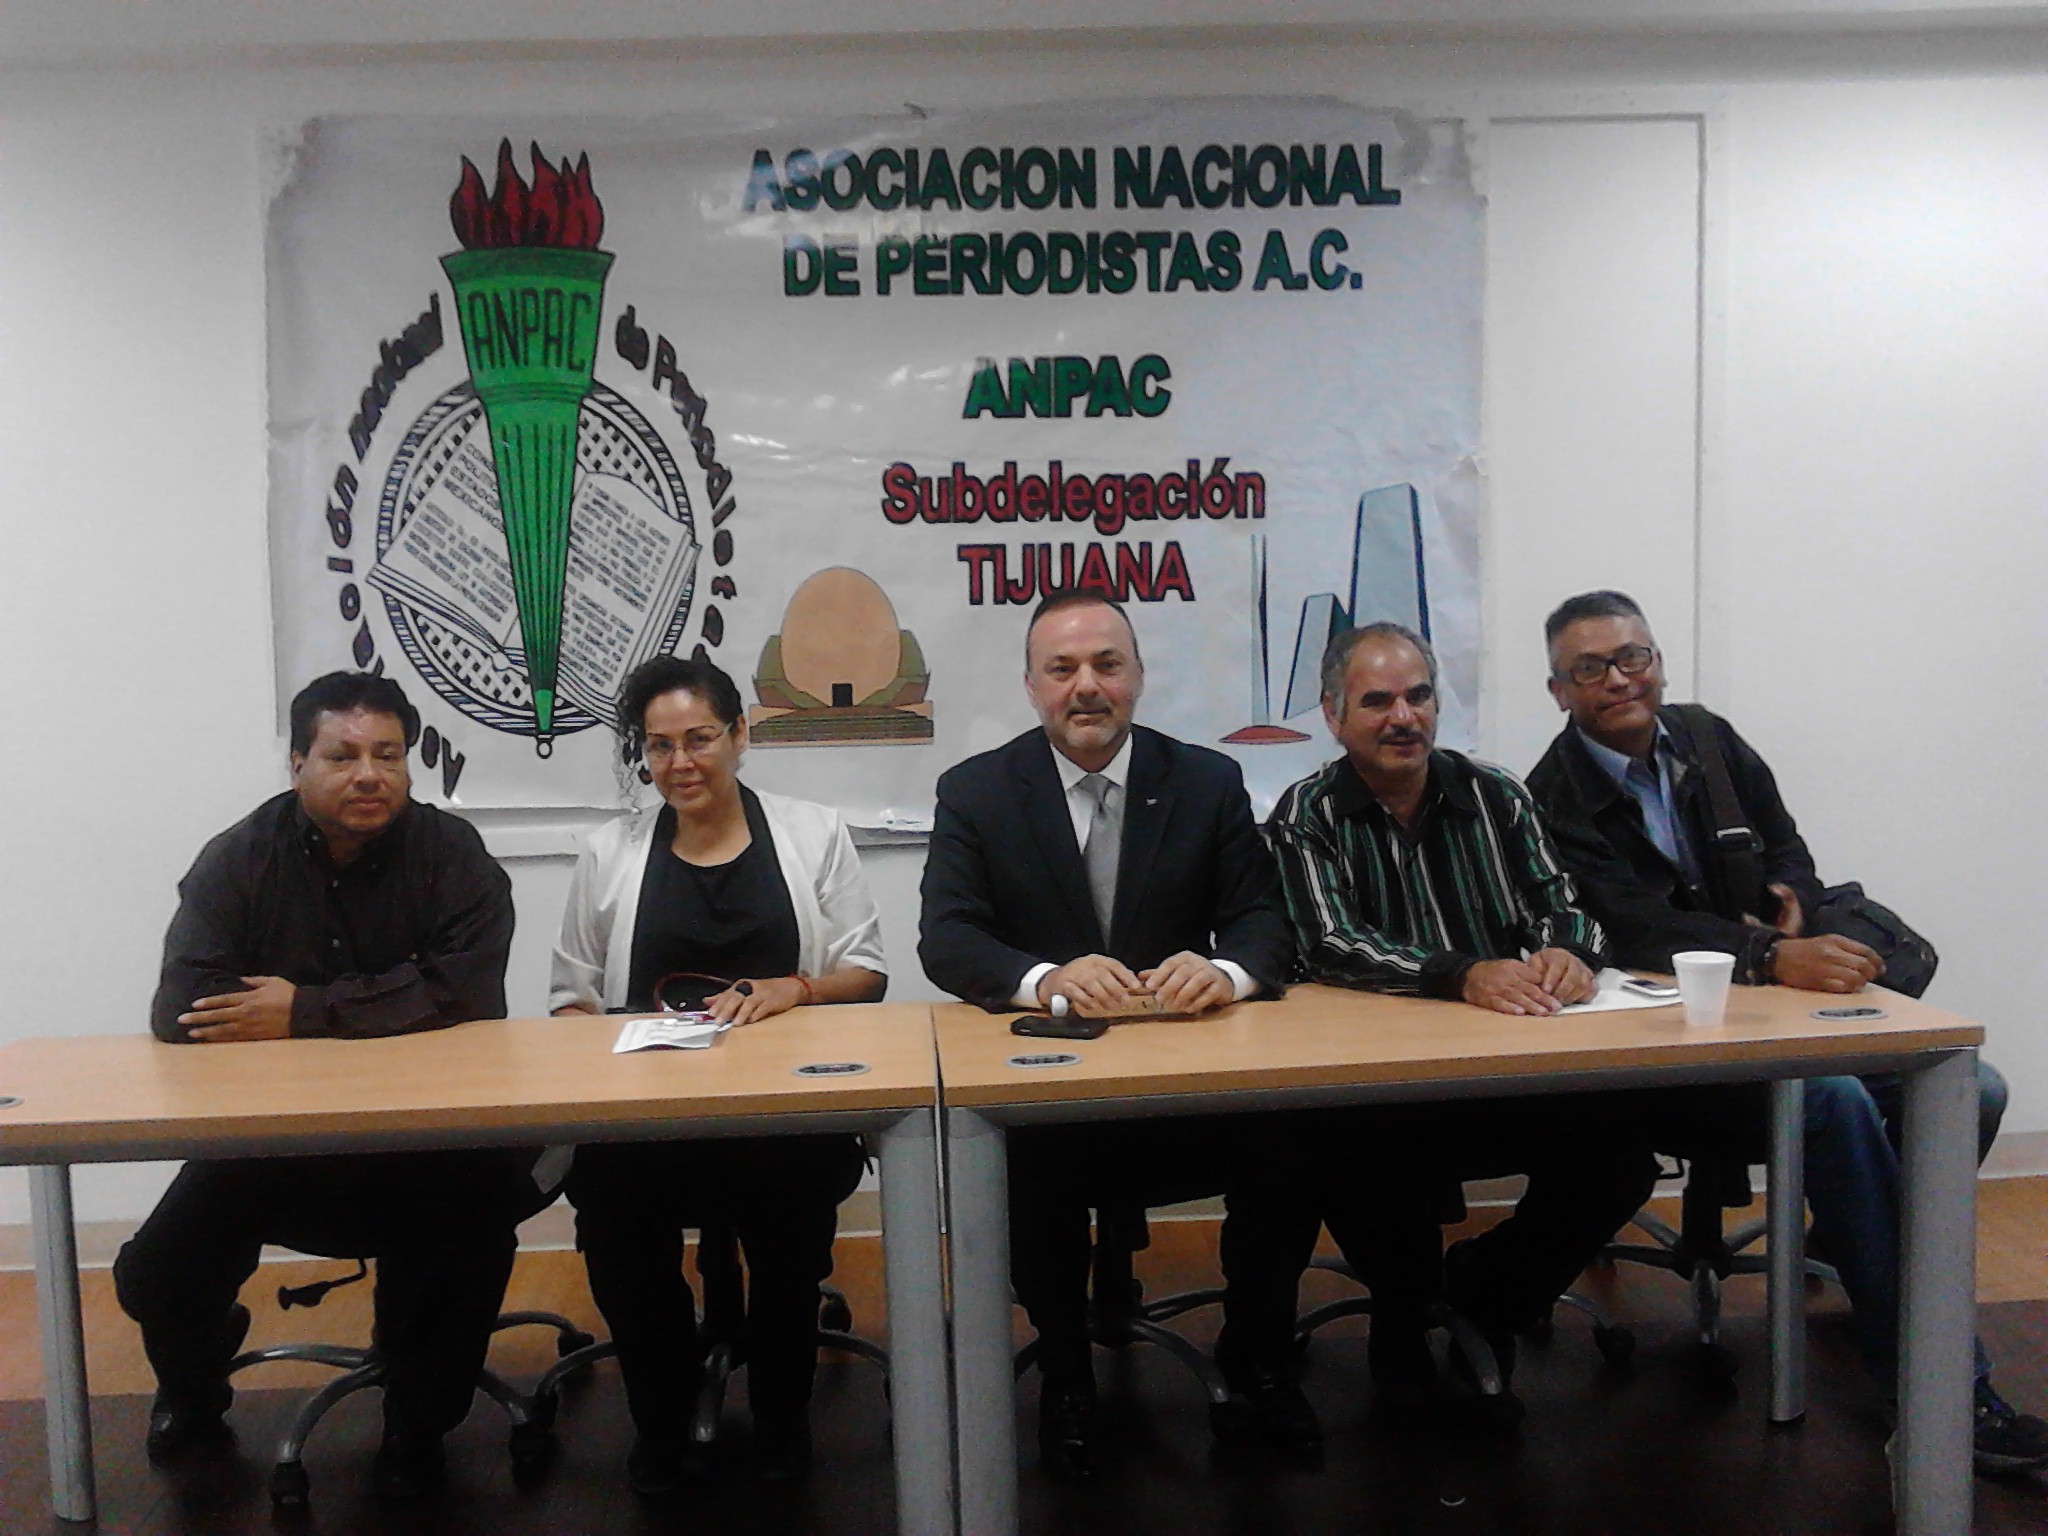 Tourist Federal Delegation is negotiated for Tijuana